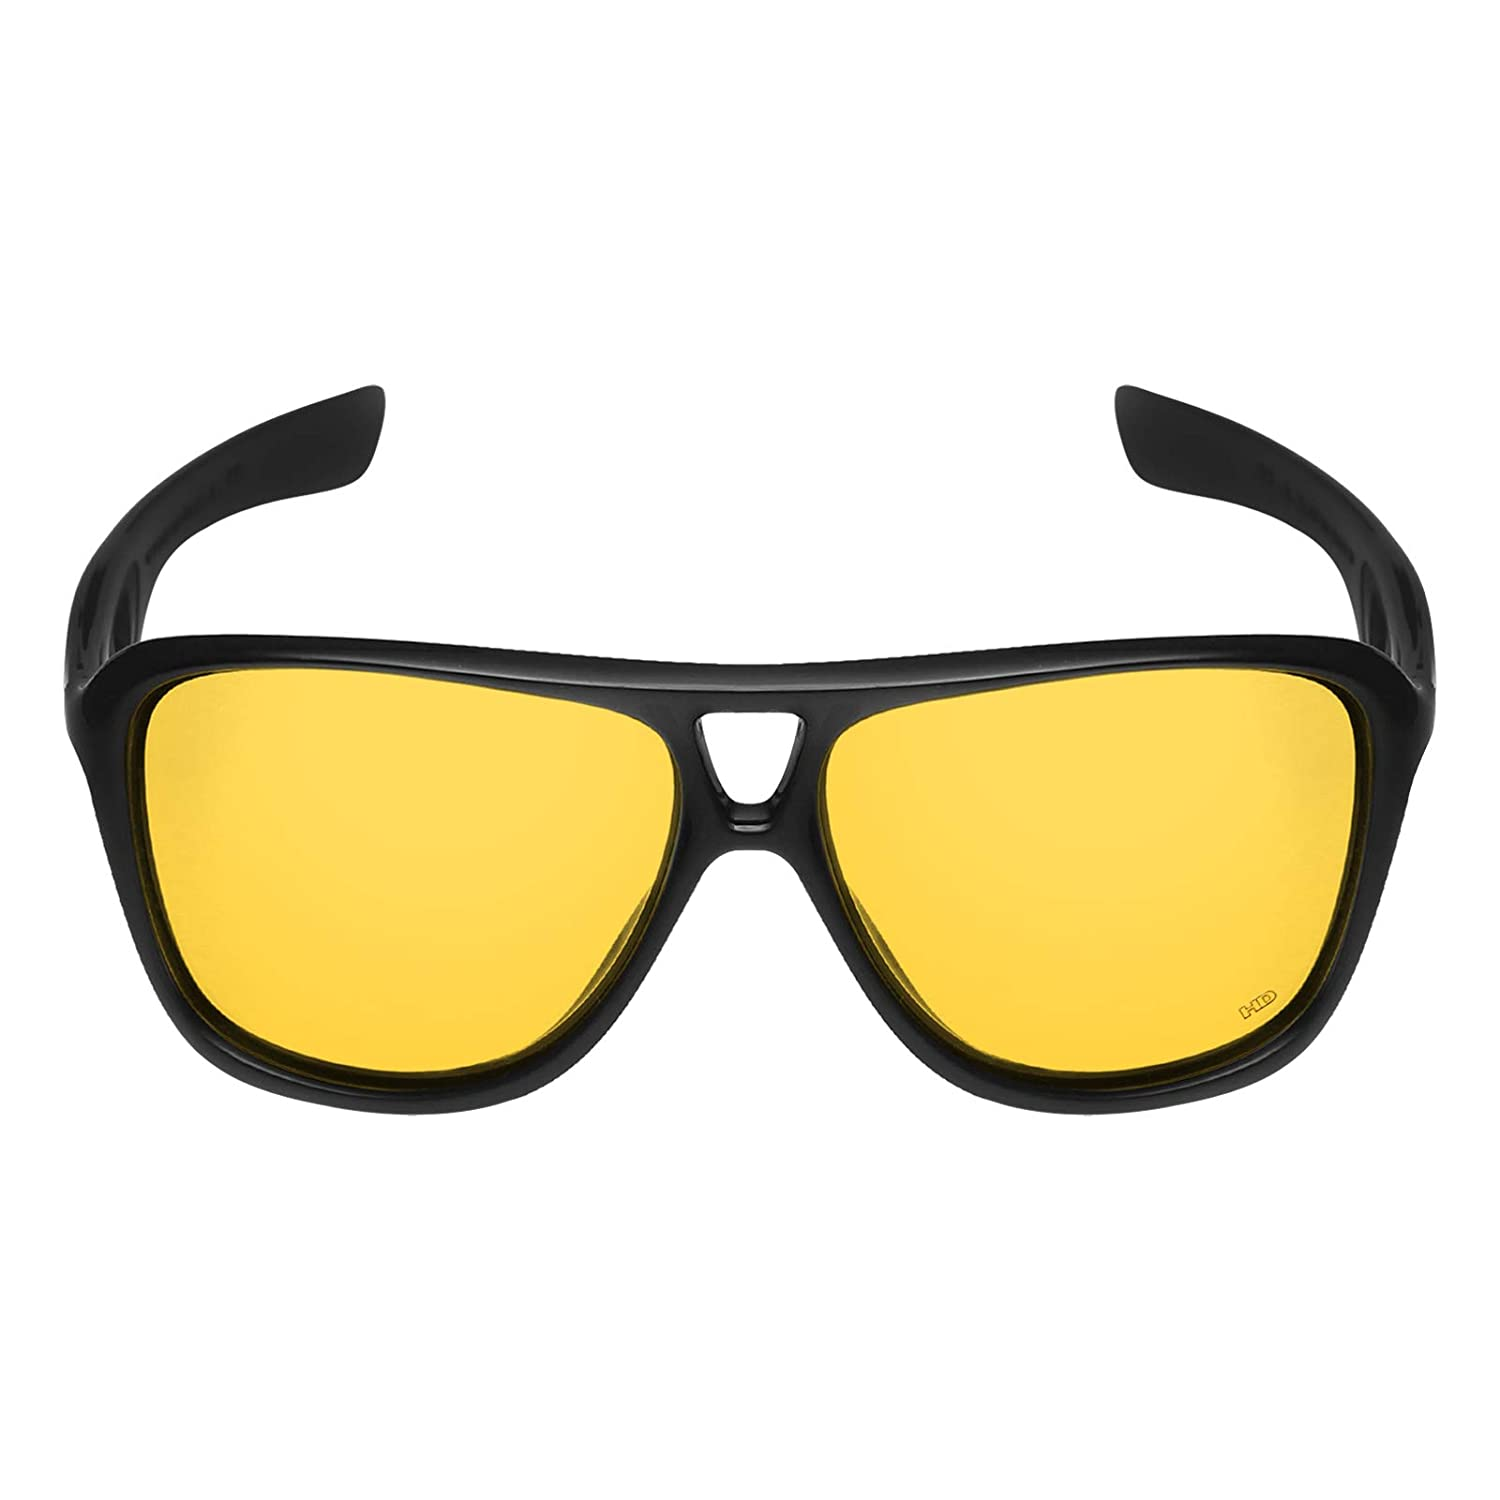 4d5496f84b7 Mryok+ Polarized Replacement Lenses for Oakley Dispatch 2 - HD Yellow   Amazon.ca  Clothing   Accessories